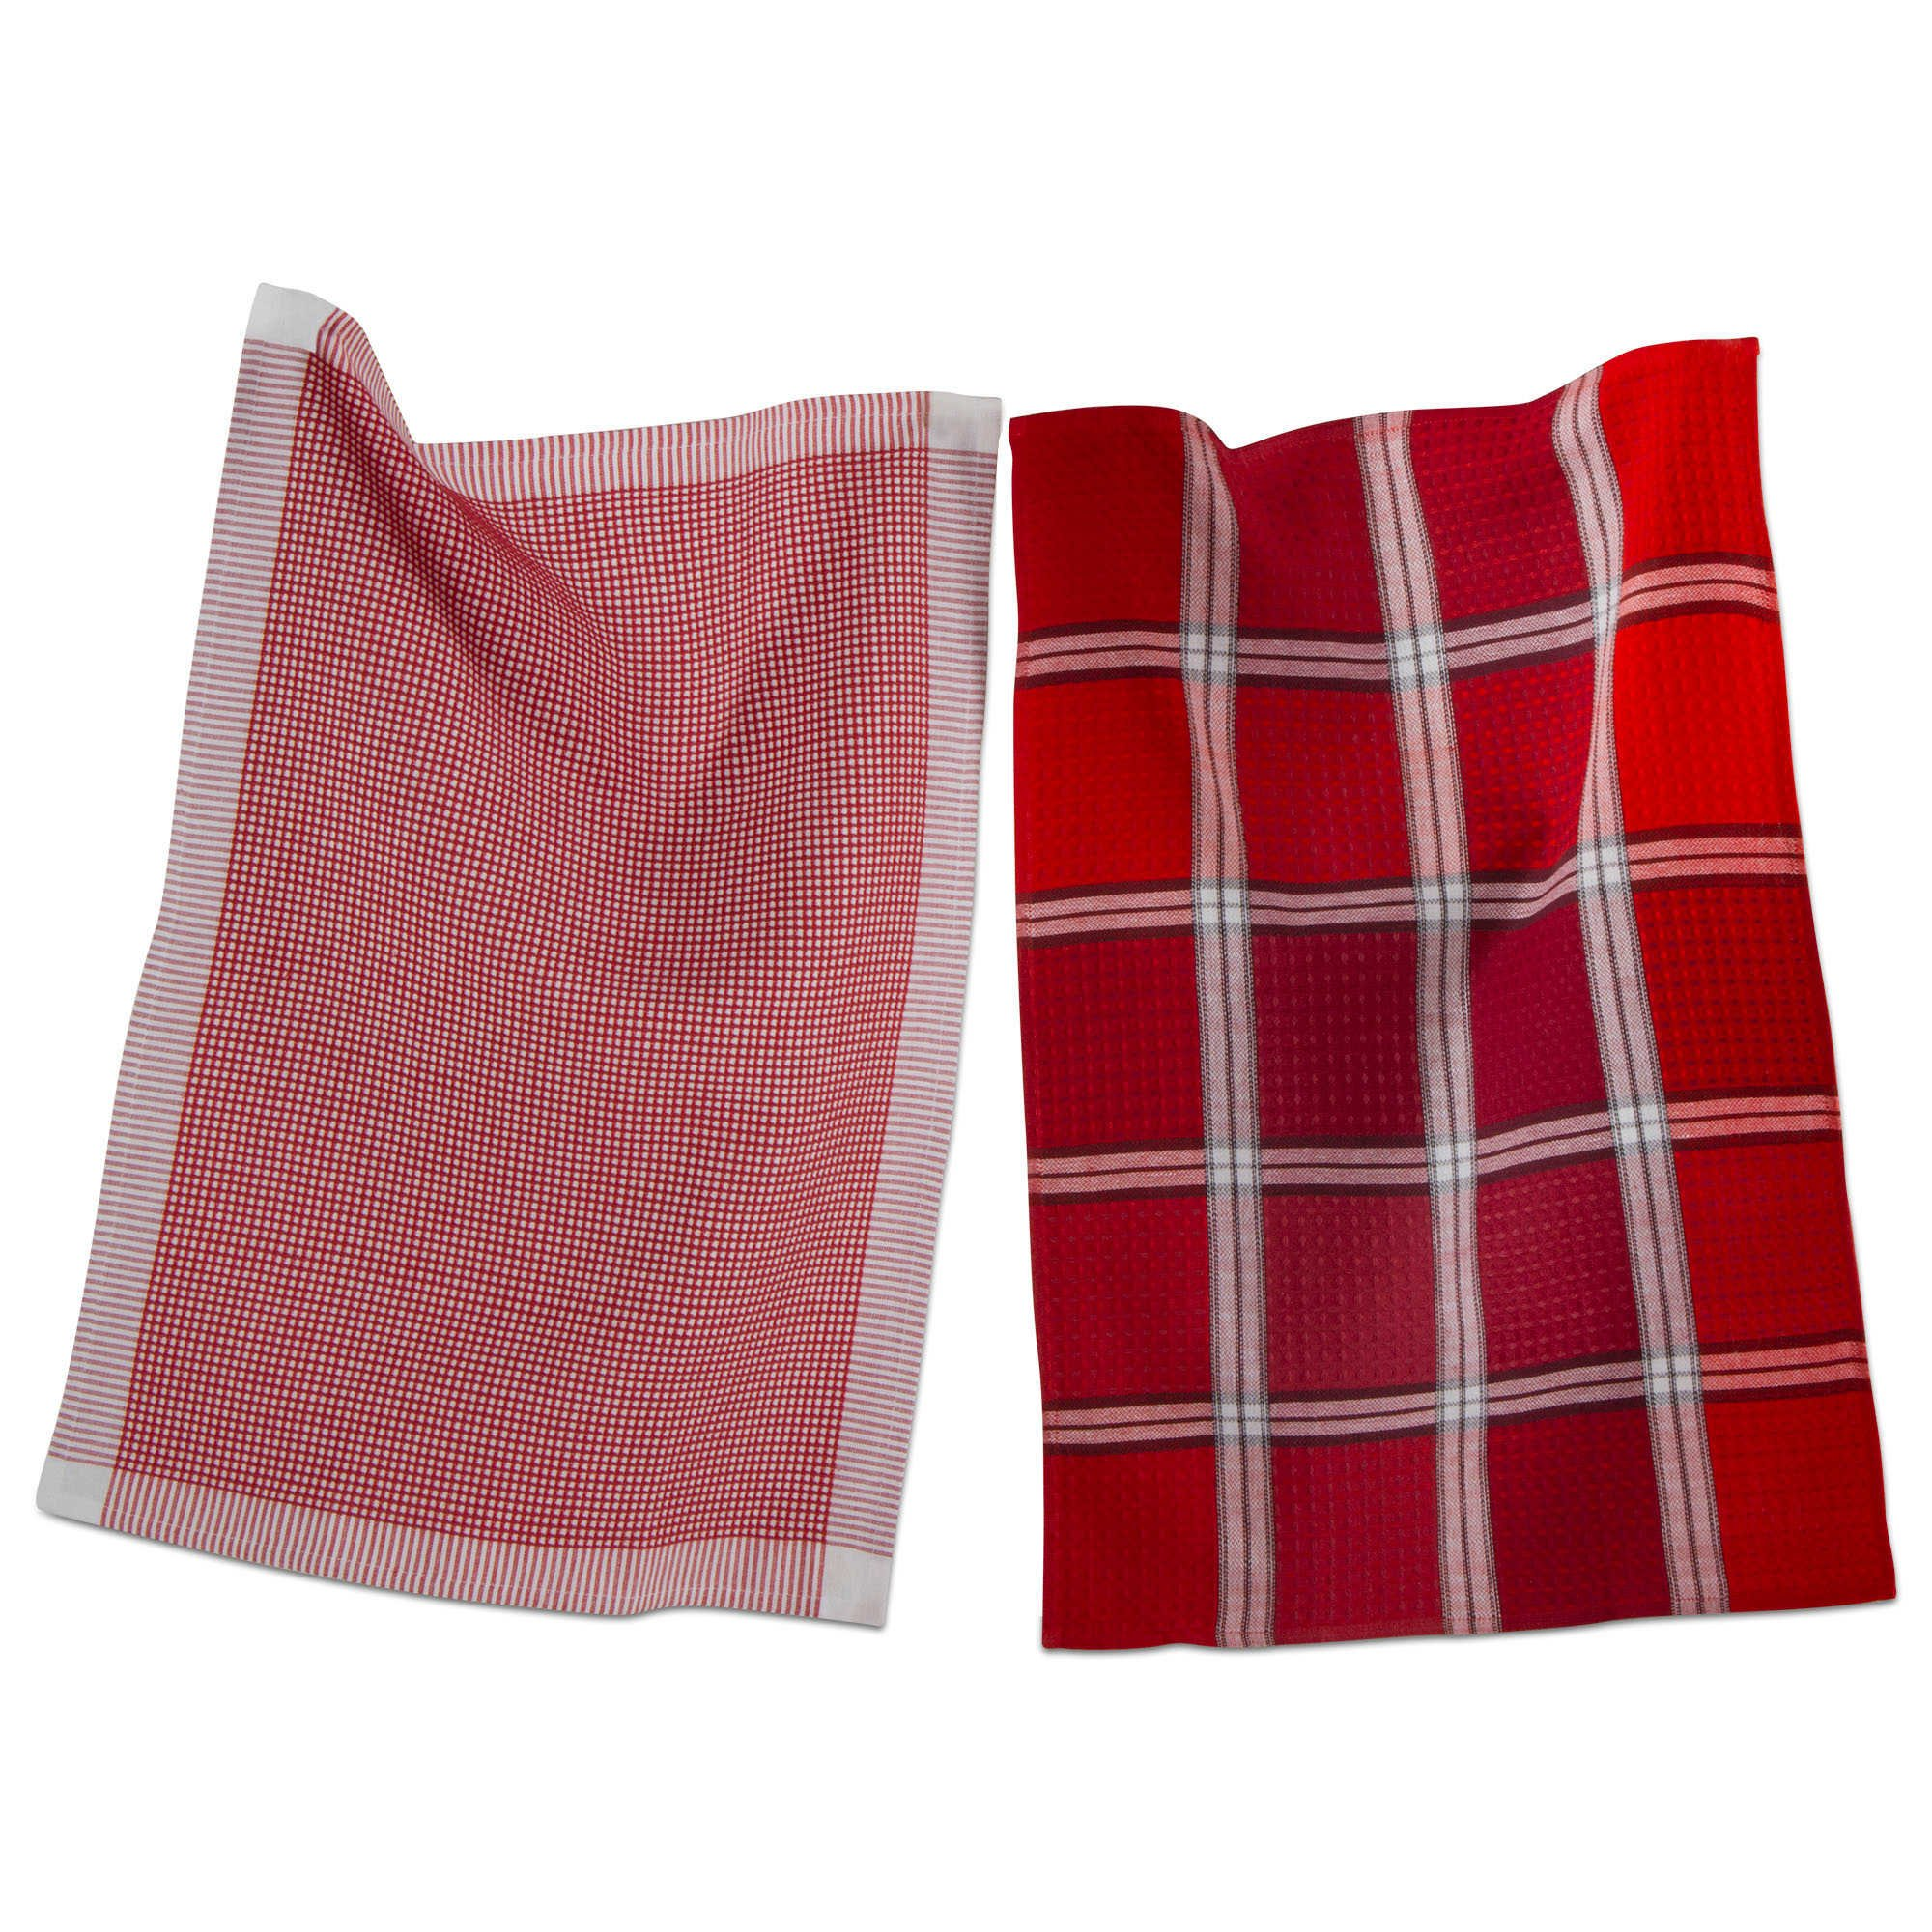 Tag Cotton Dishtowel Woven Kitchen Striped Checkered Waffleweave Red Set of 2